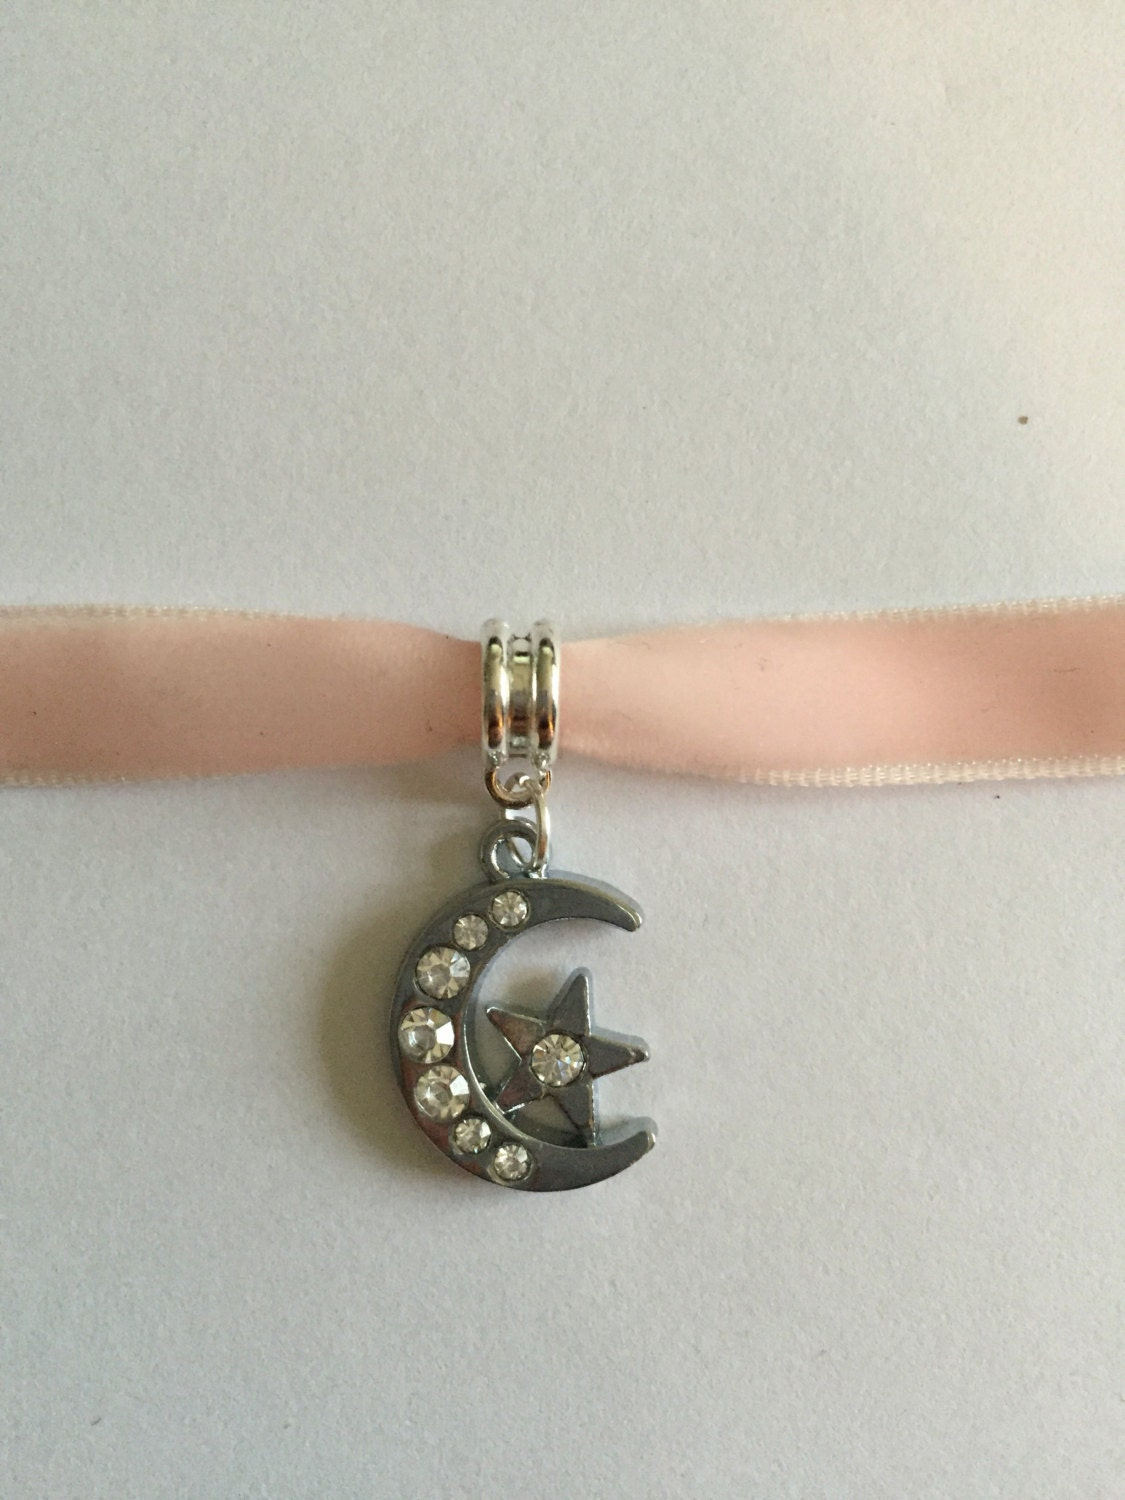 Pink Velvet Ribbon Choker Necklace With Moon And Star Charm